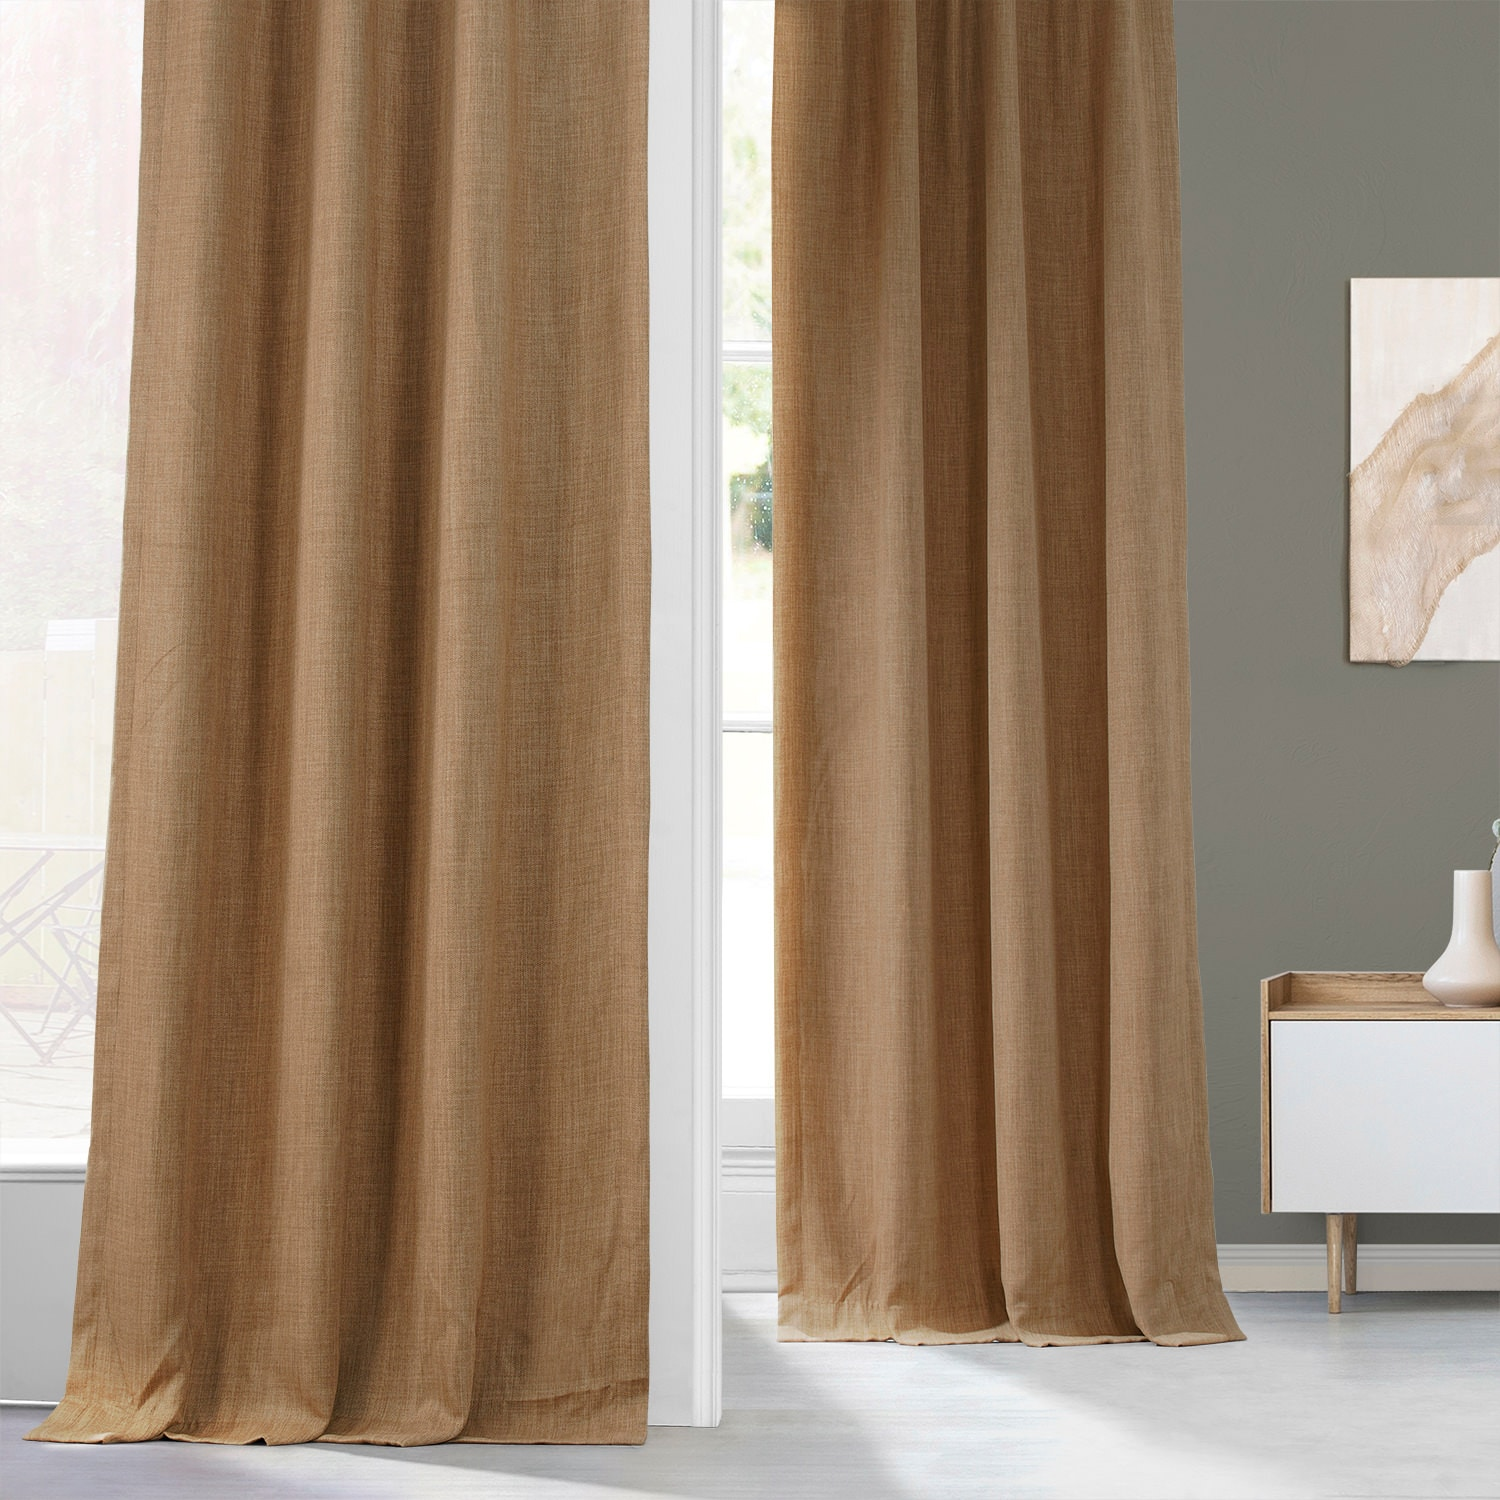 Butterscotch Faux Linen Blackout Curtain